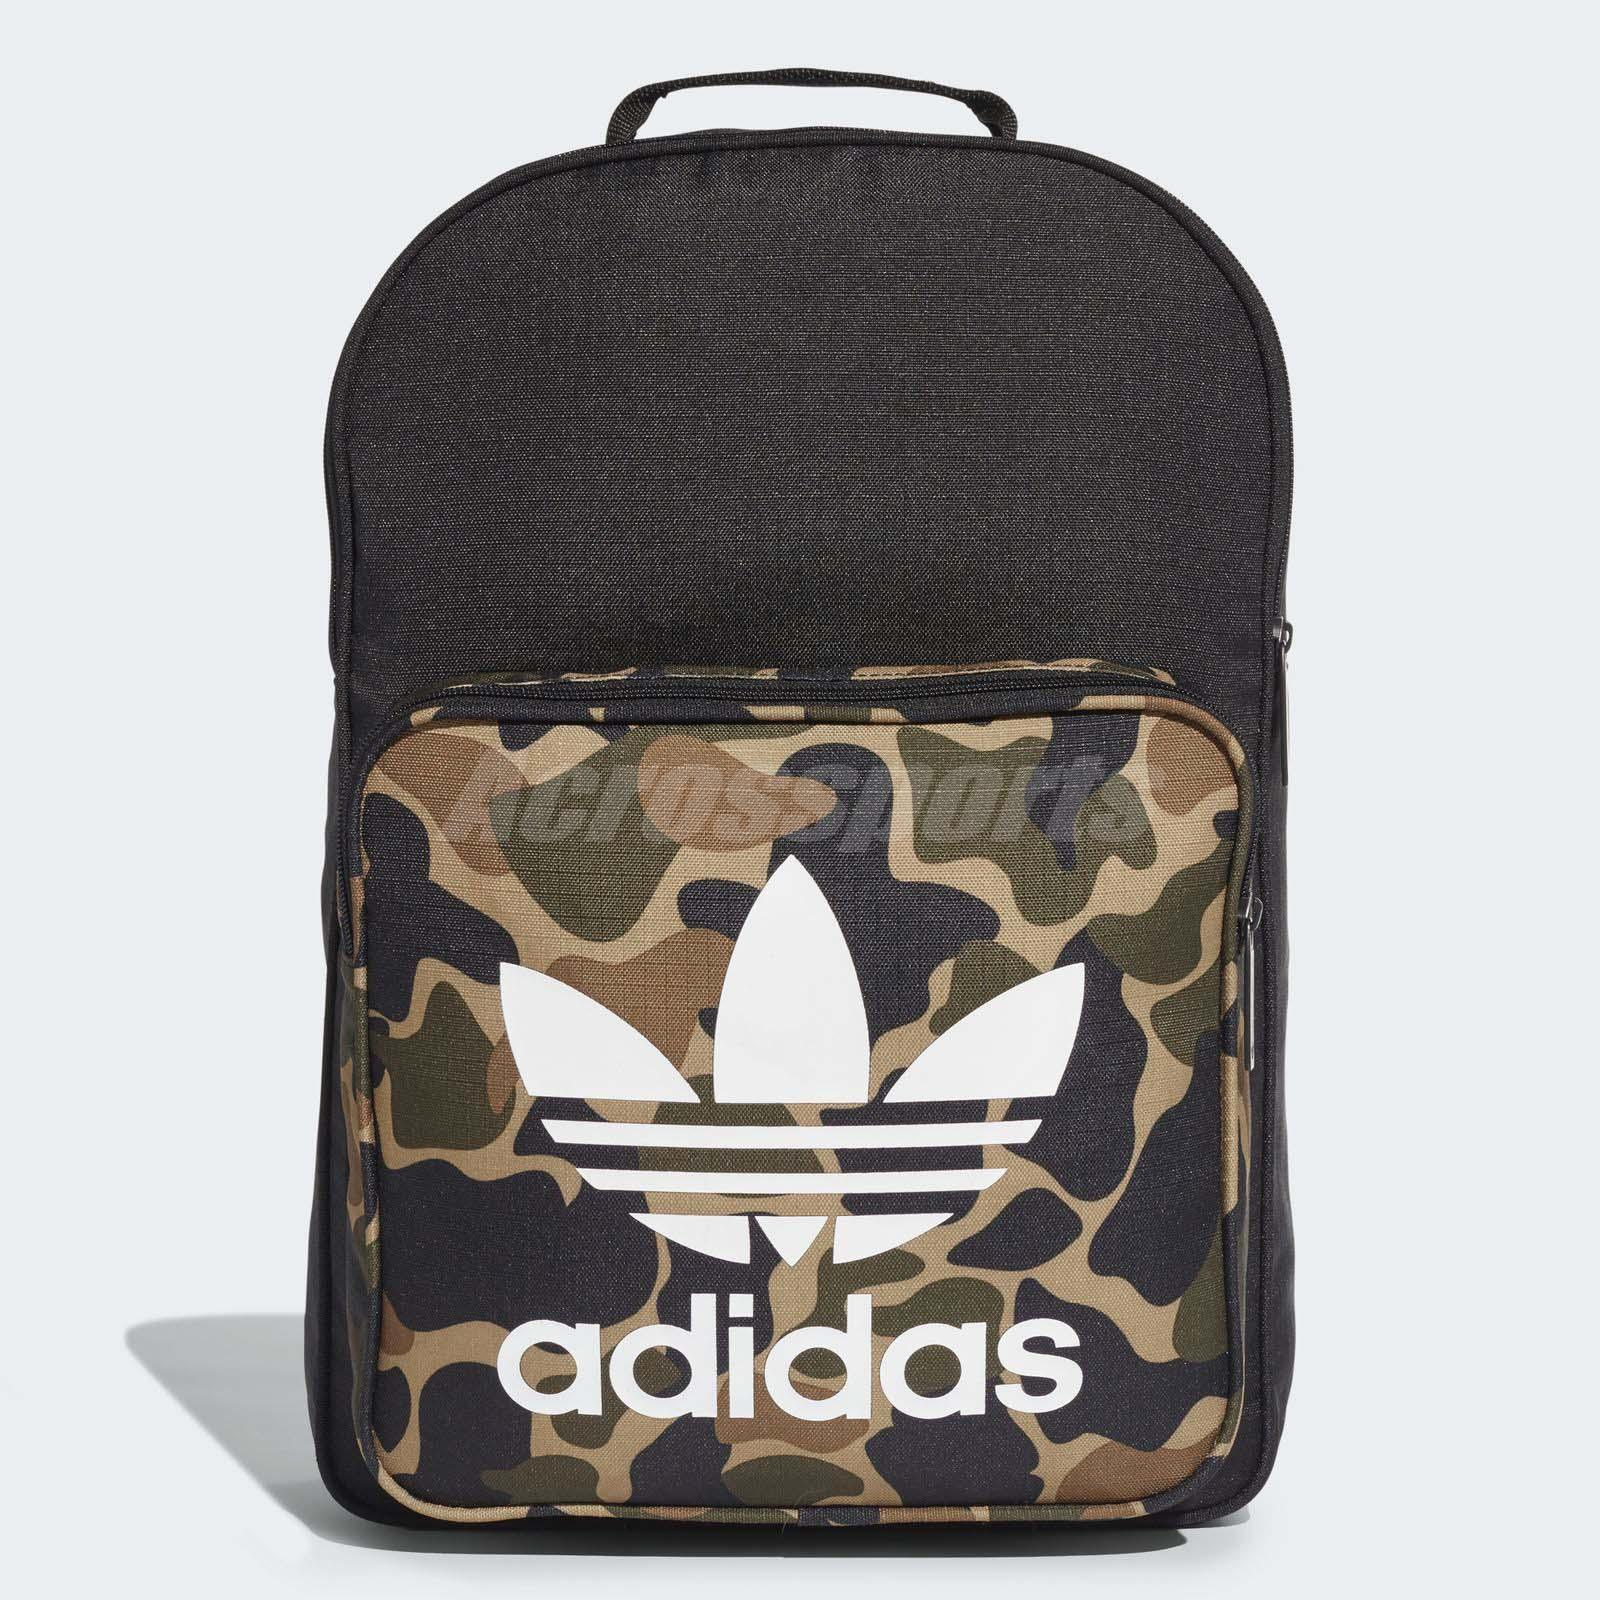 Details about adidas Unisex Originals Classic Camouflage Backpack Black Green CD6121